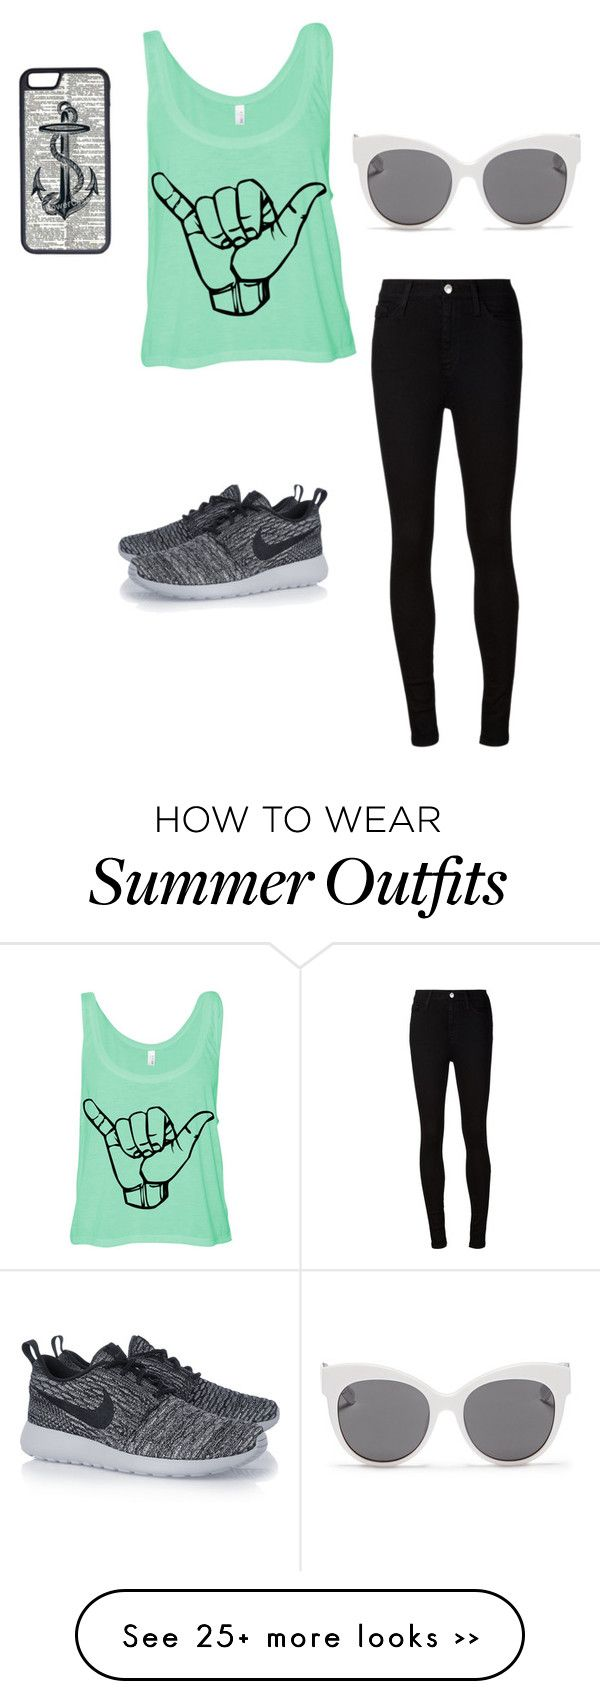 """""""Casual outfits are always the best!"""" by emzy266 on Polyvore featuring AG Adriano Goldschmied, CellPowerCases, Blanc & Eclare and NIKE"""